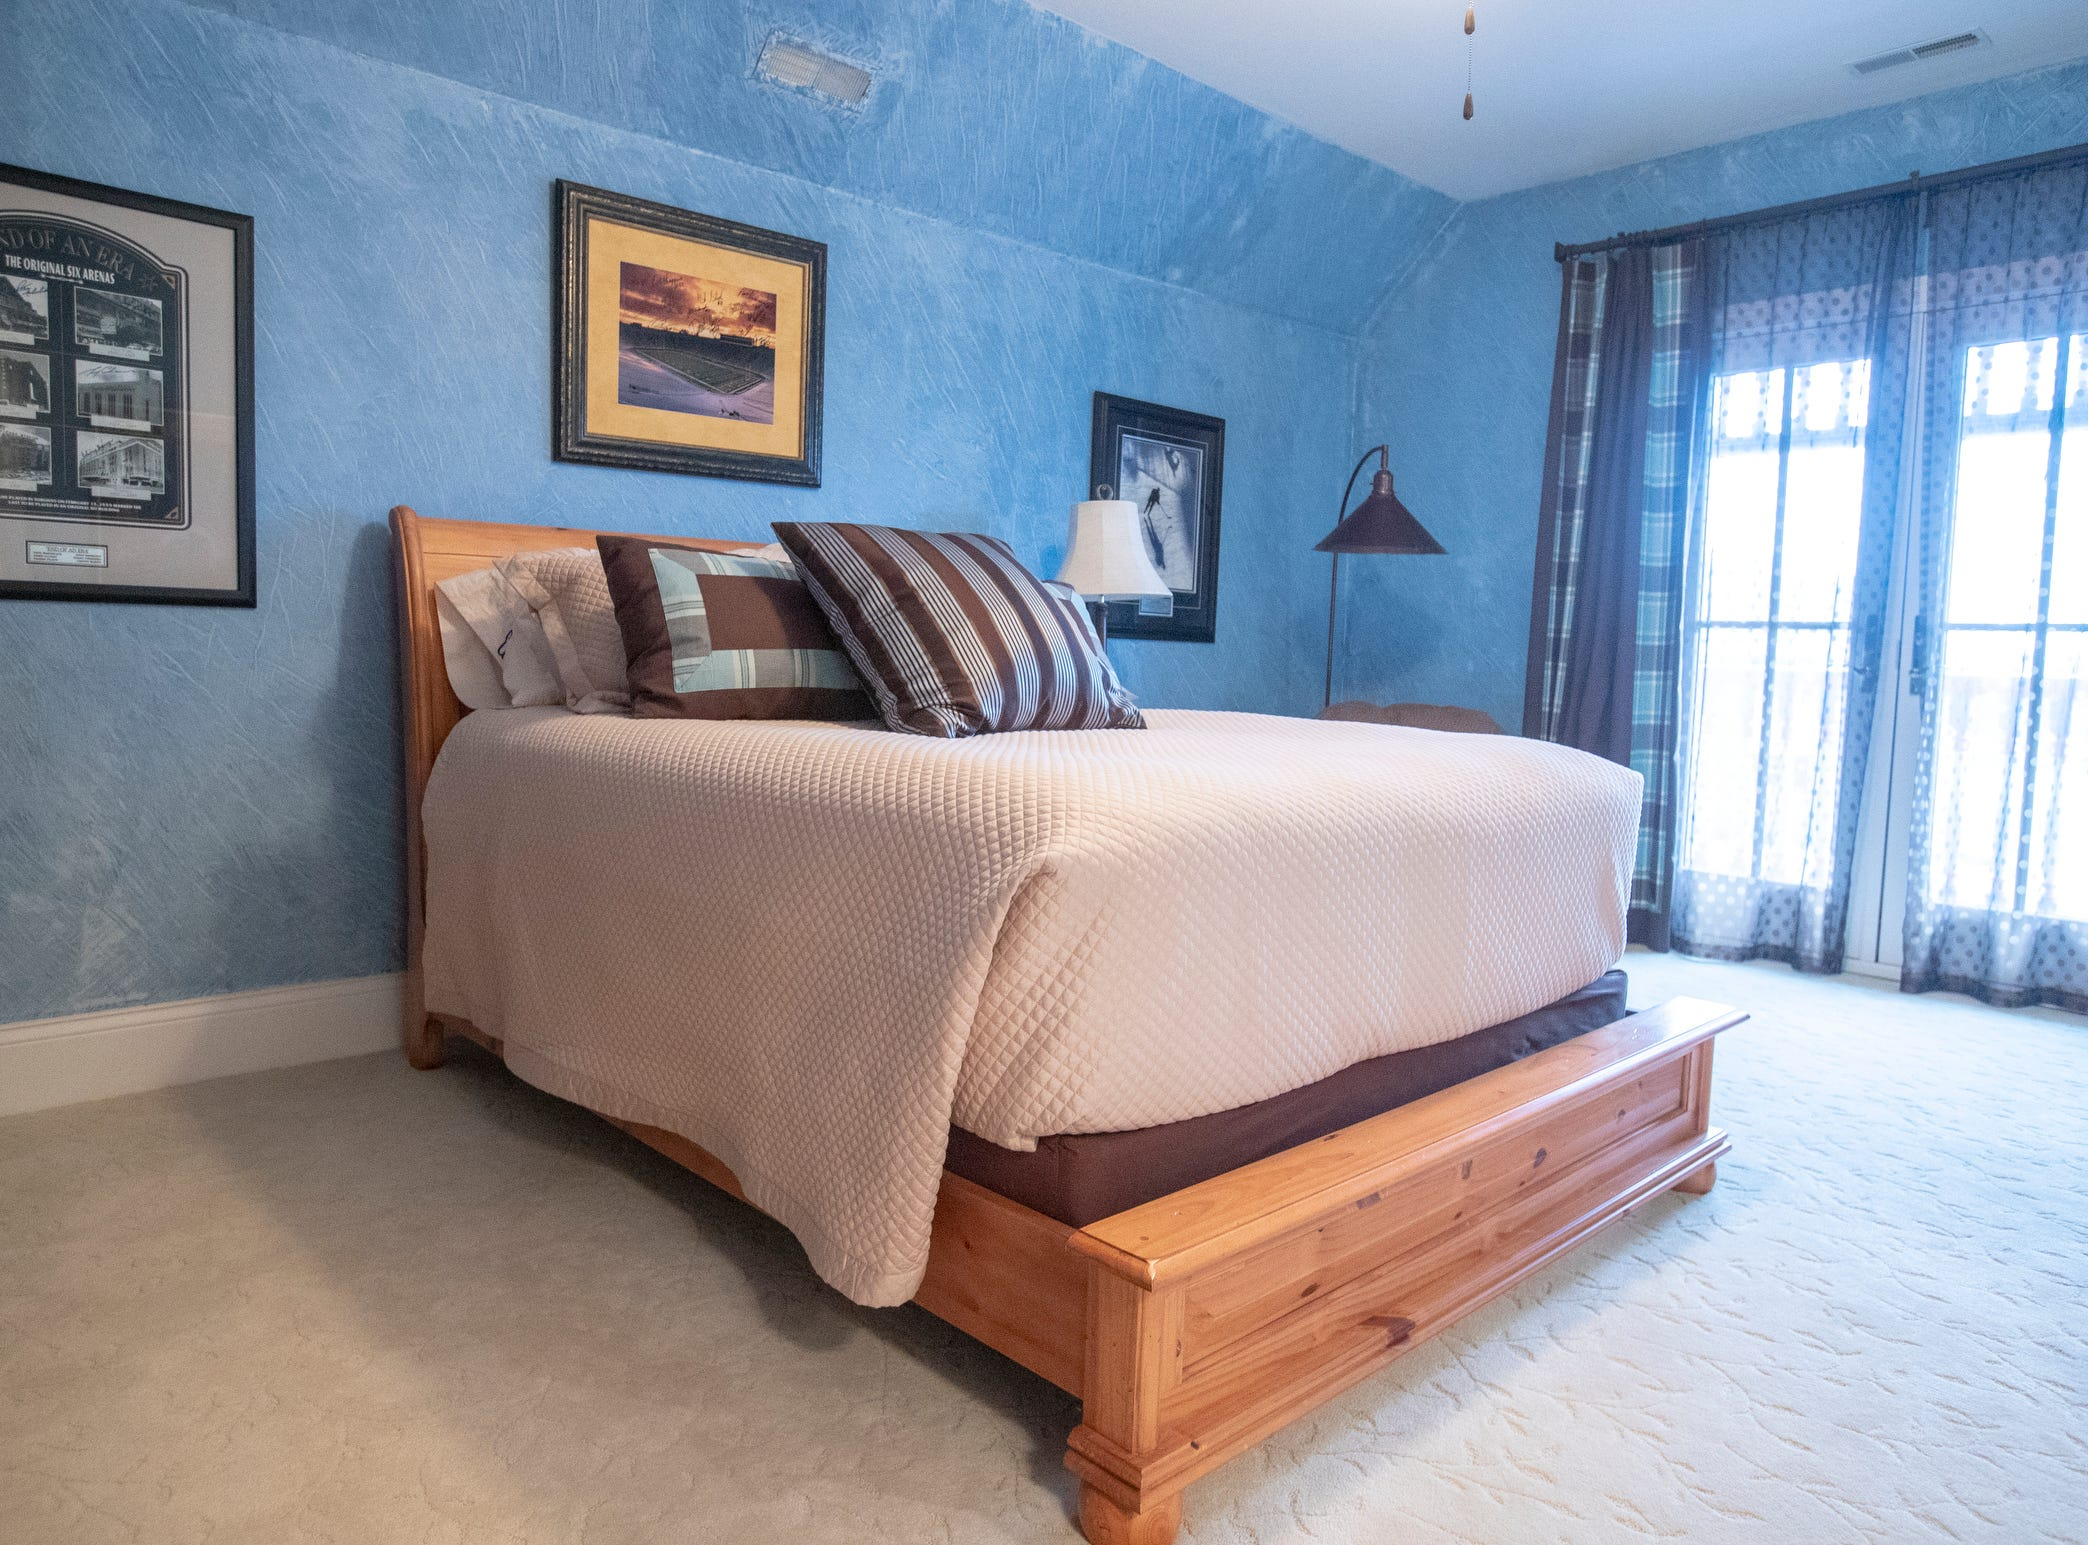 One of the bedrooms in a thirteen-year-old Victorian home in the Village of West Clay, Carmel, March 20, 2019. The house includes 16 rooms with five bedrooms, 8,348 square feet, and is listed at $1.275 million.